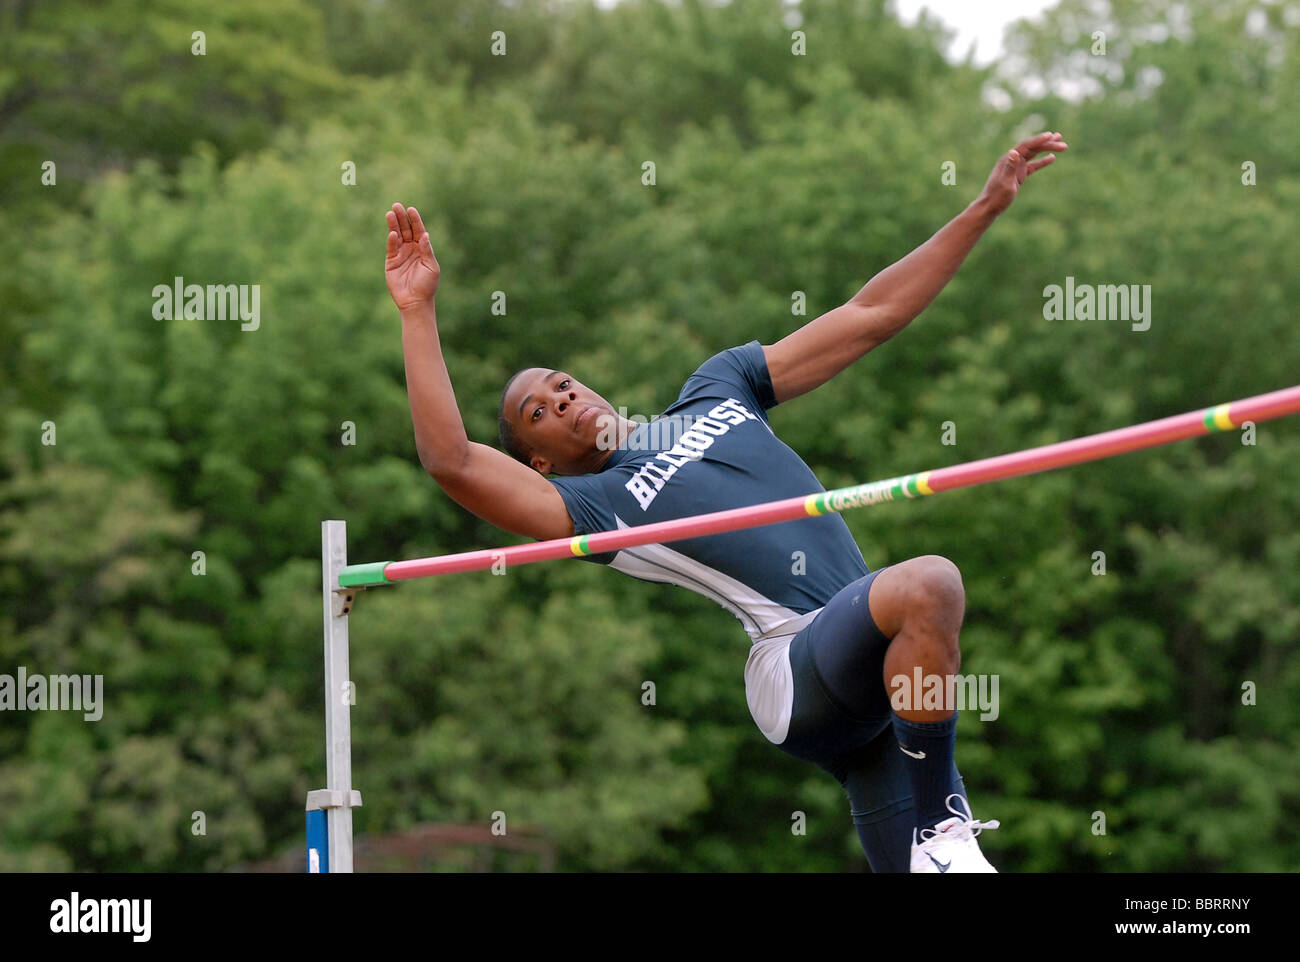 A High School track athlete jumps over the bar during the high jump during the Connecticut State Championship Track - Stock Image